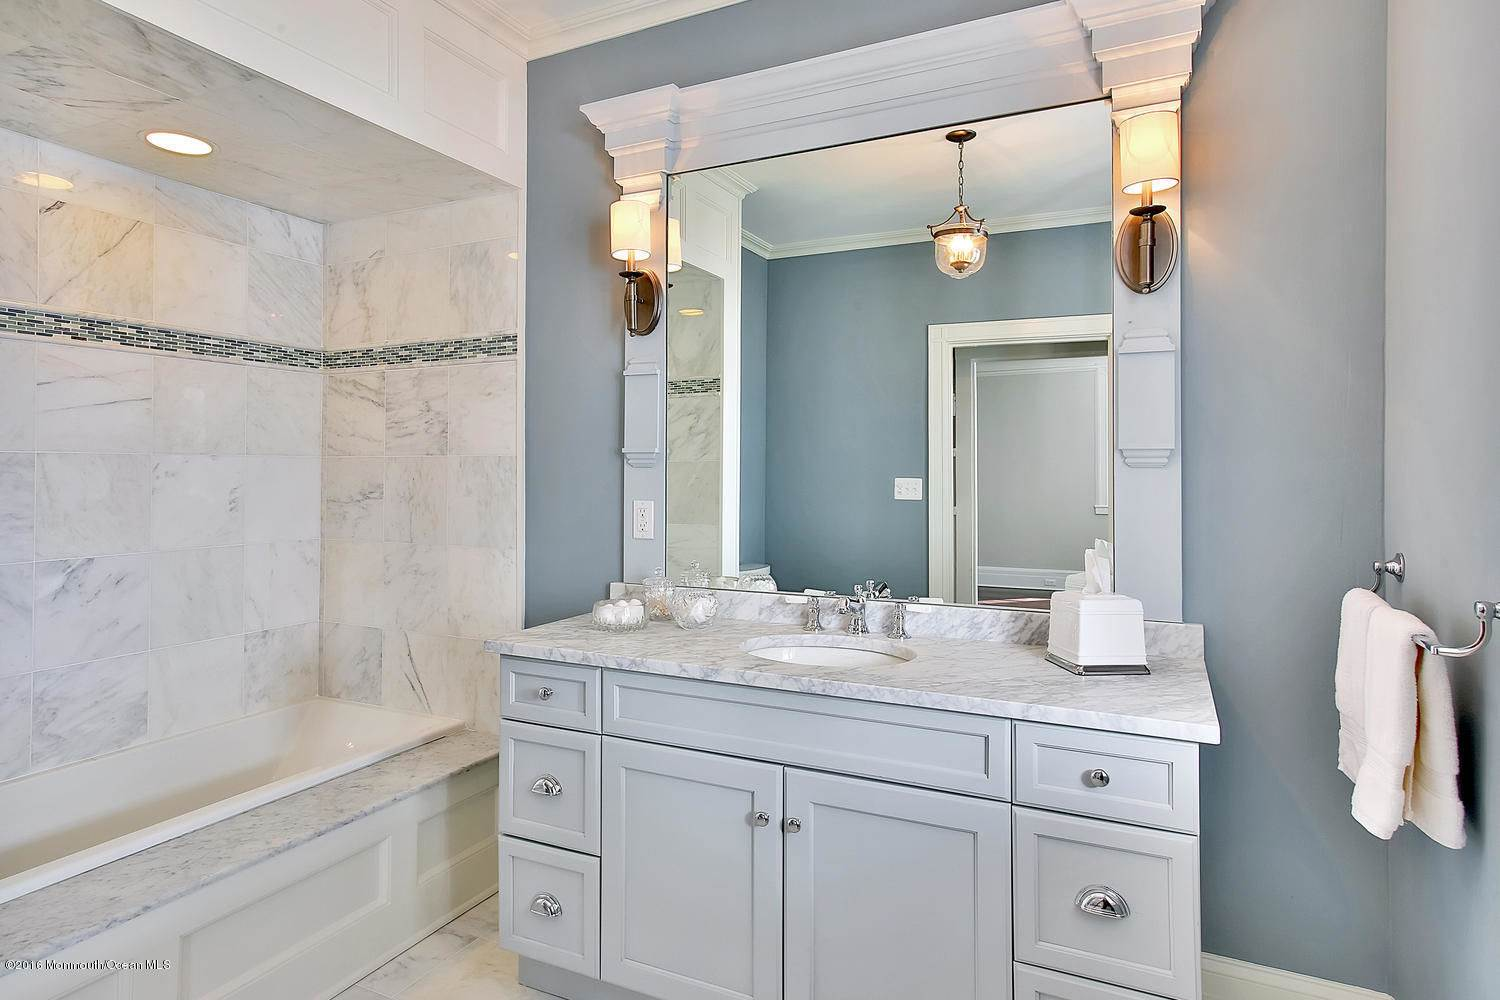 marble blue grey gray white bathroom shower vanity ideas inspiration georgian greek revival mansion home house architecture style remodel renovation